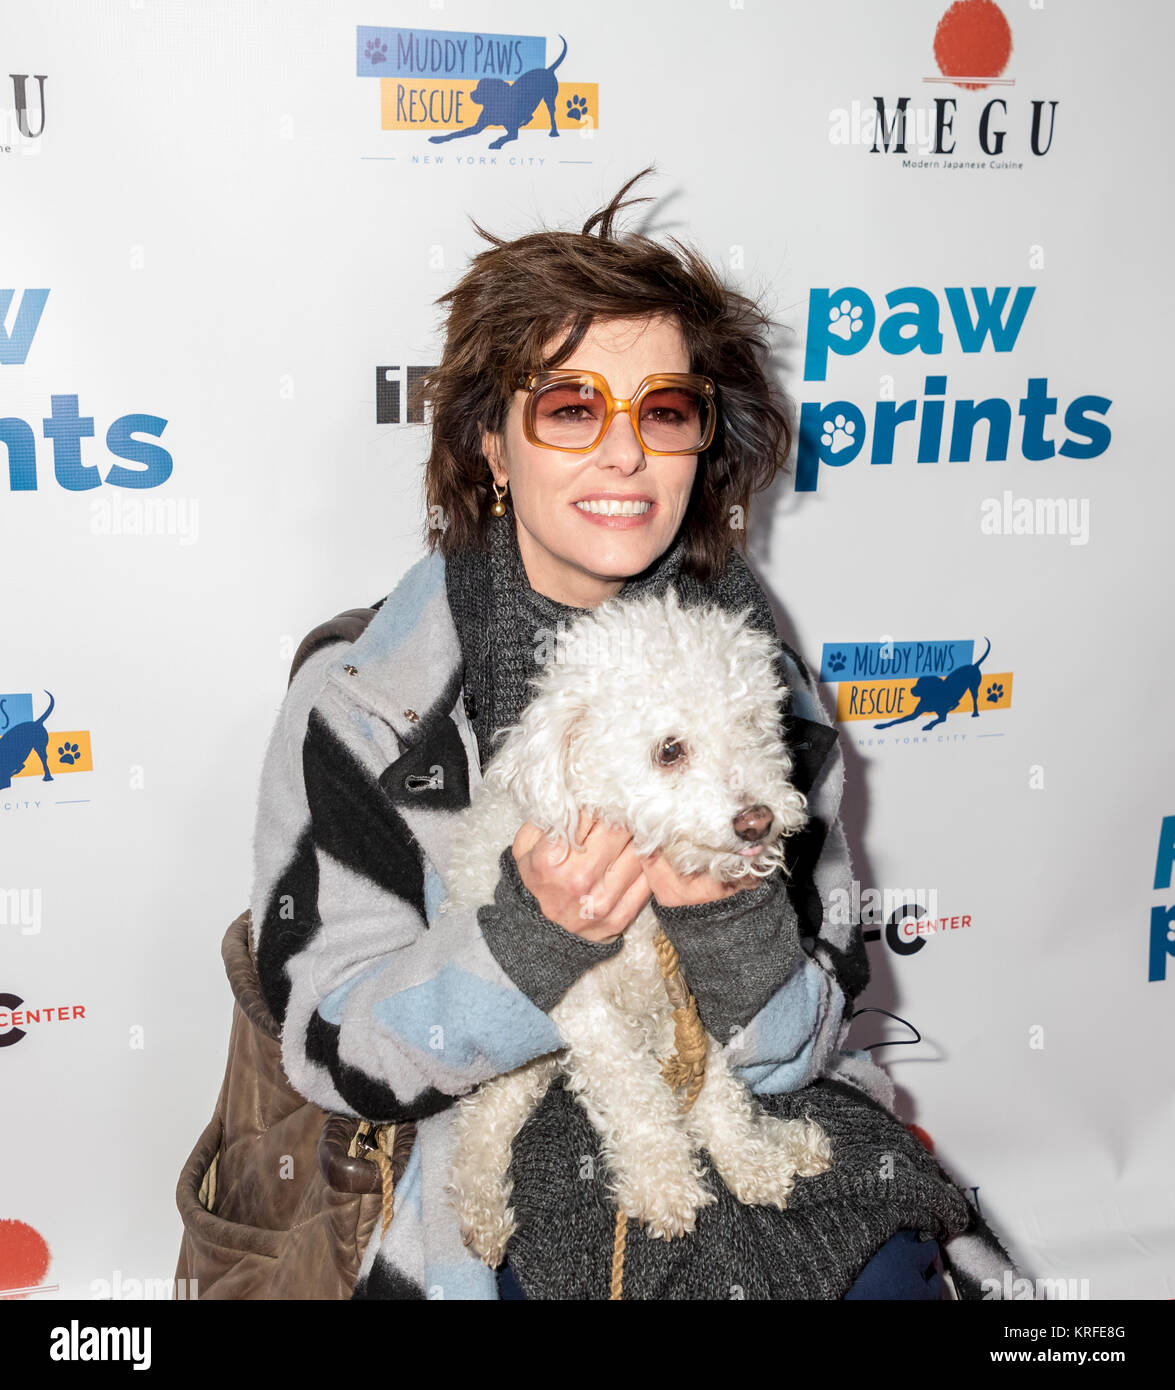 New York, NY, USA - December 19: Actress Parker Posey with her dog Gracie attend Paw Prints 1st Annual Paw-liday - Stock Image